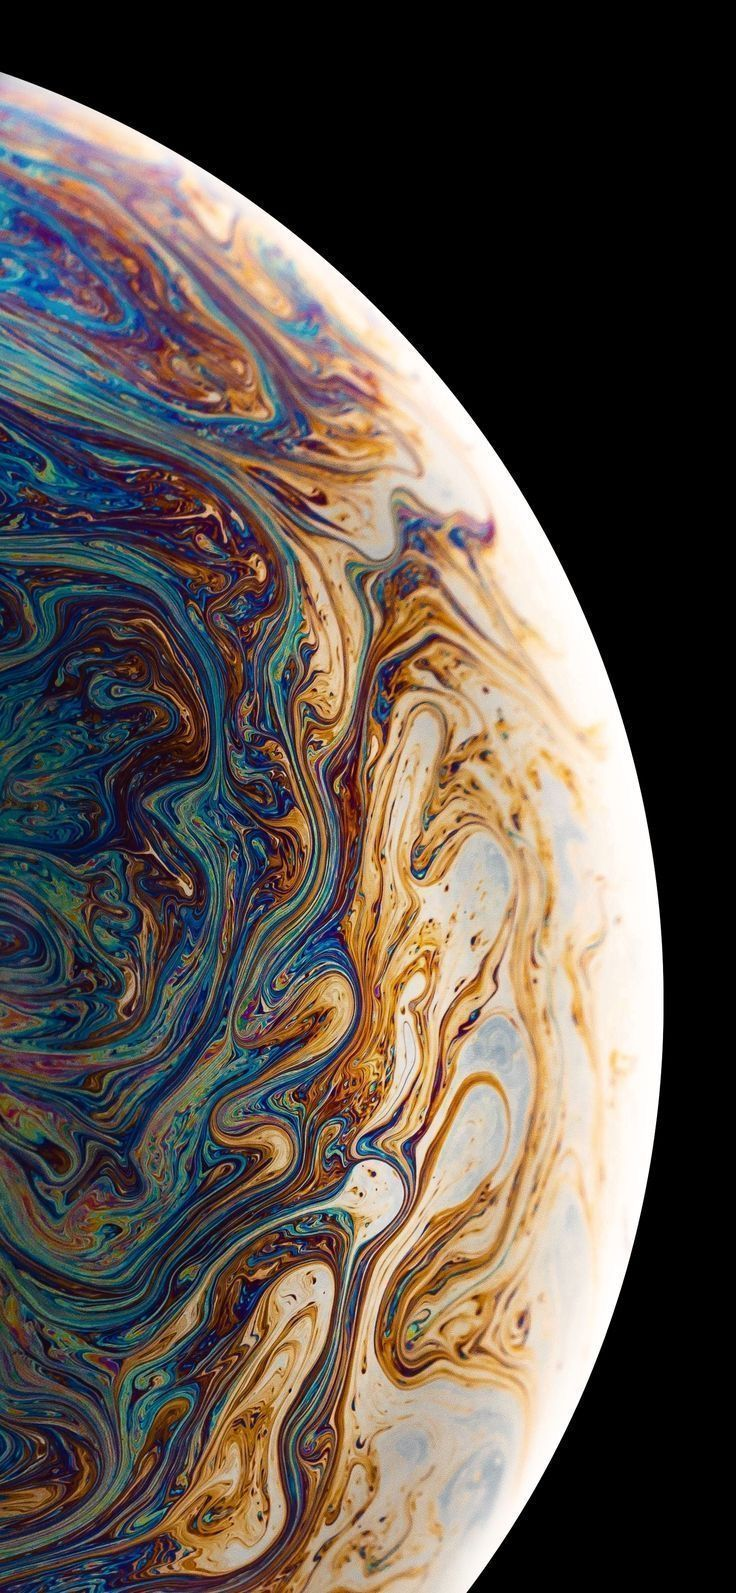 ios13wallpaper in 2020 Live wallpaper iphone, Galaxy